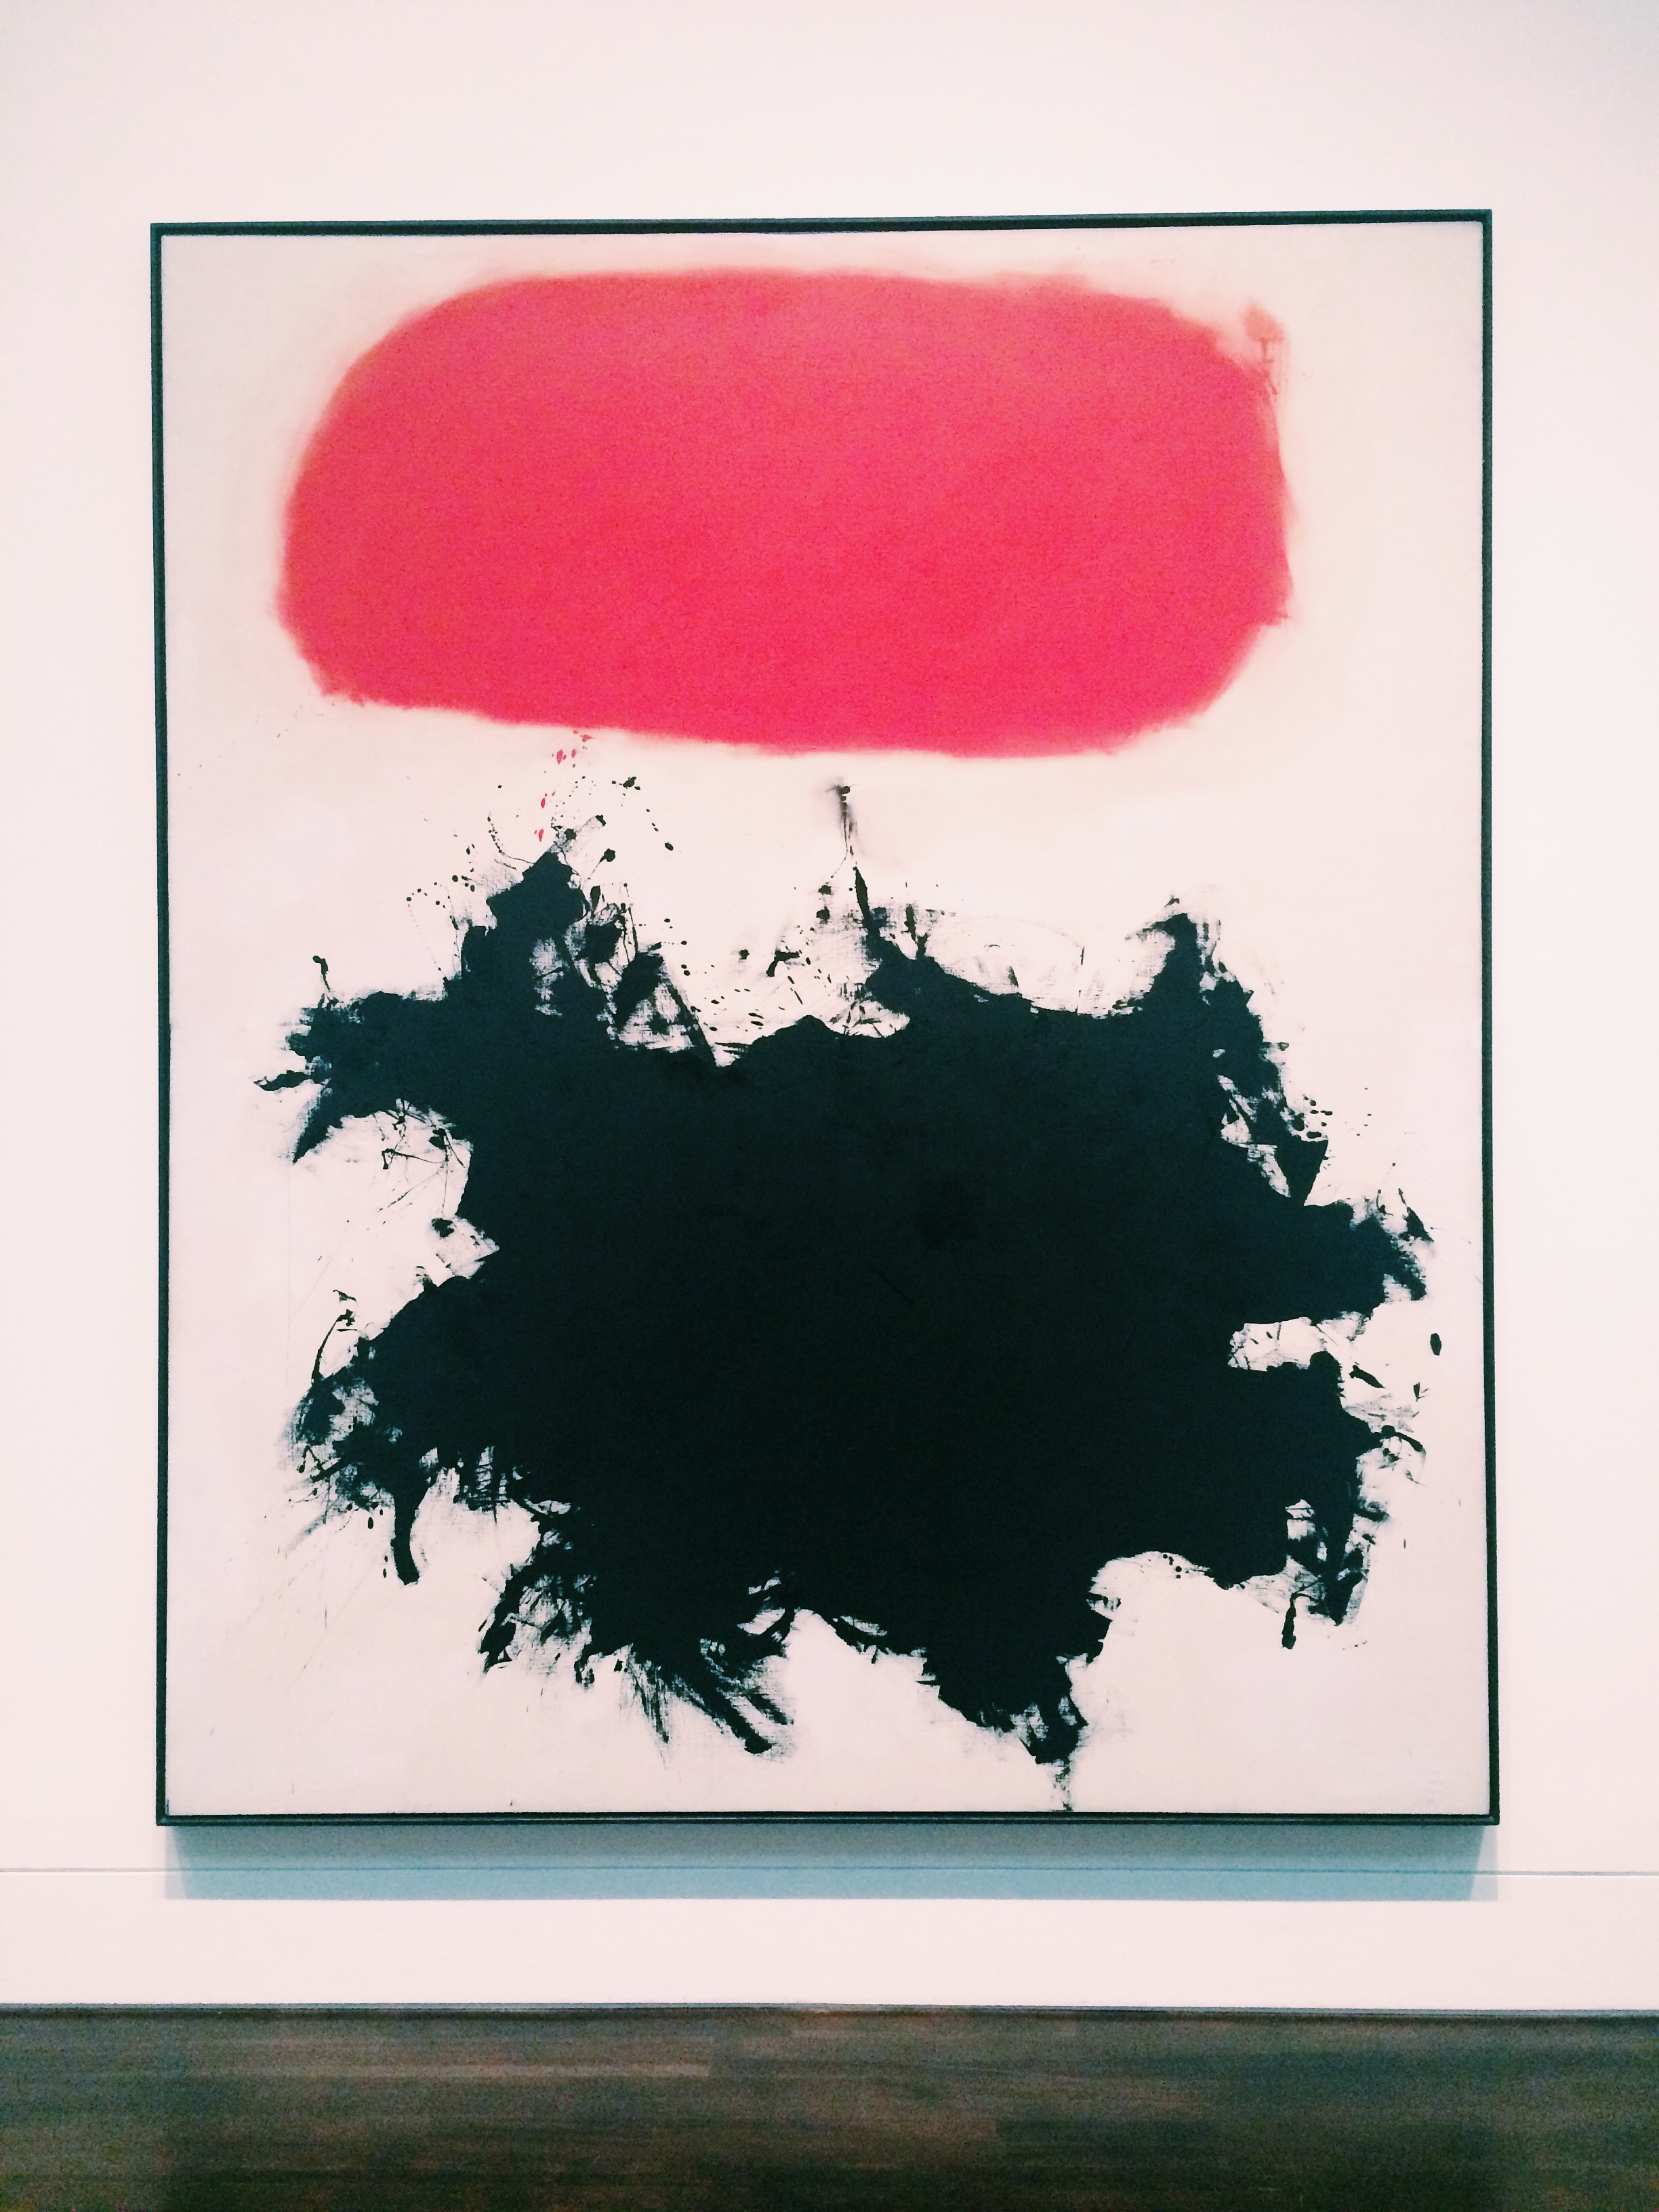 Adolph Gottlieb's 'Cadmium Red Above Black' at the Blanton Museum of Art in Austin, TX